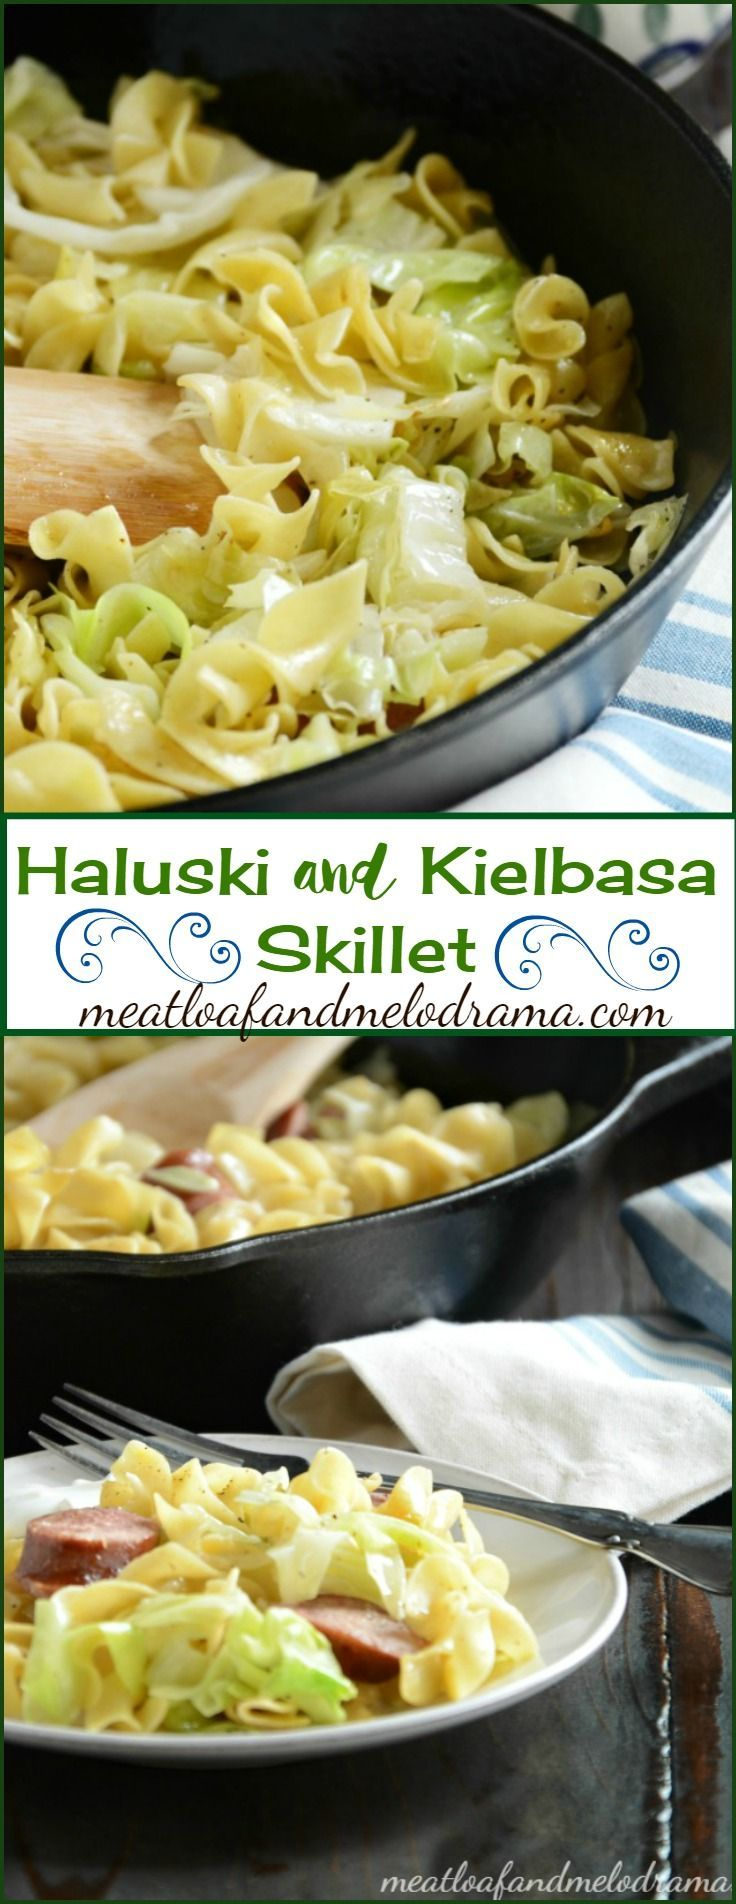 Haluski and Kielbasa - Fried Noodles and Cabbage with Polish Sausage is Eastern European comfort food at it's best!